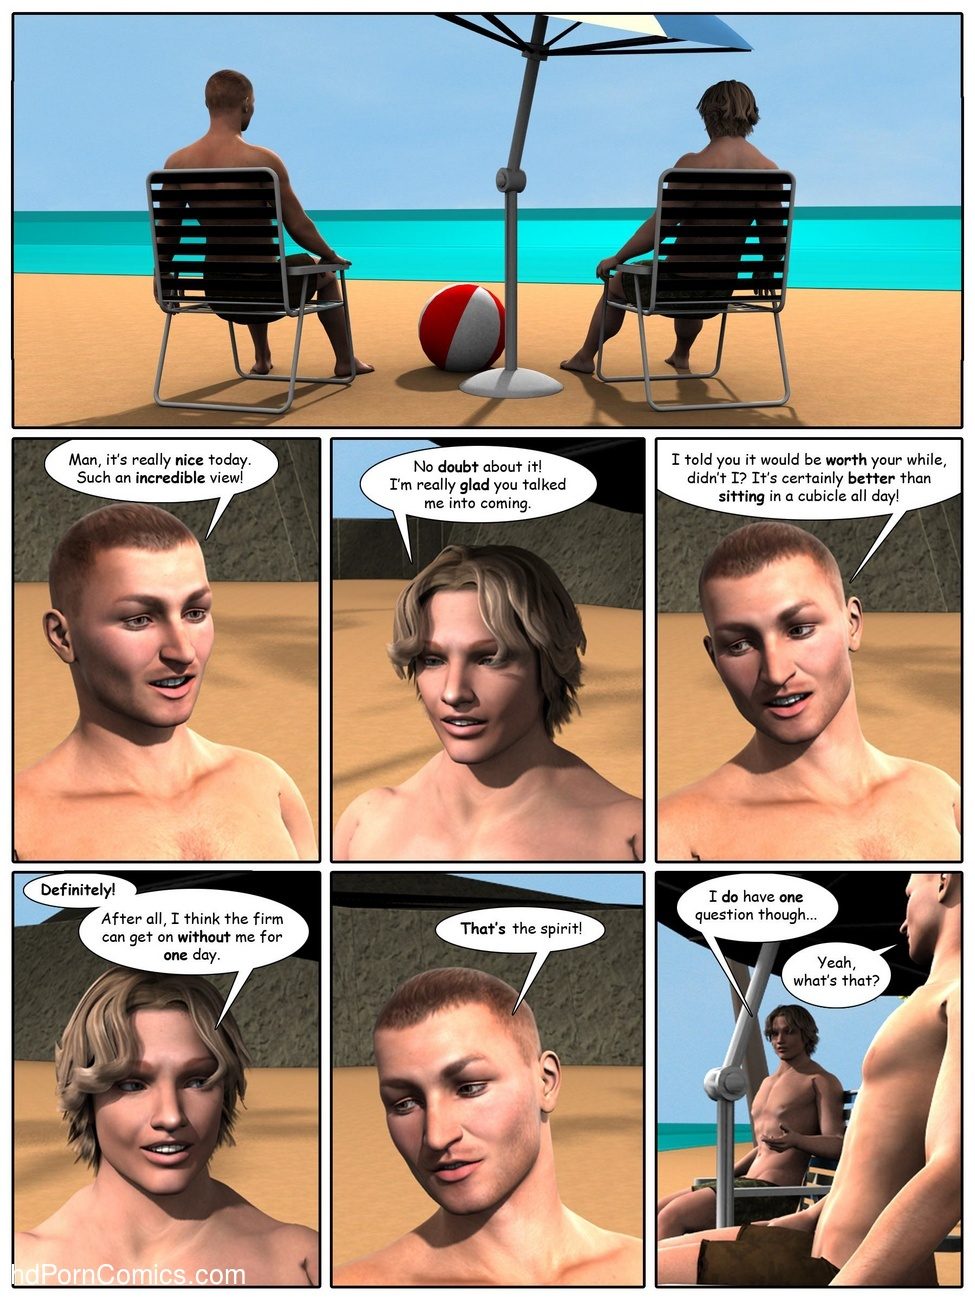 A Day At The Beach 2 free sex comic